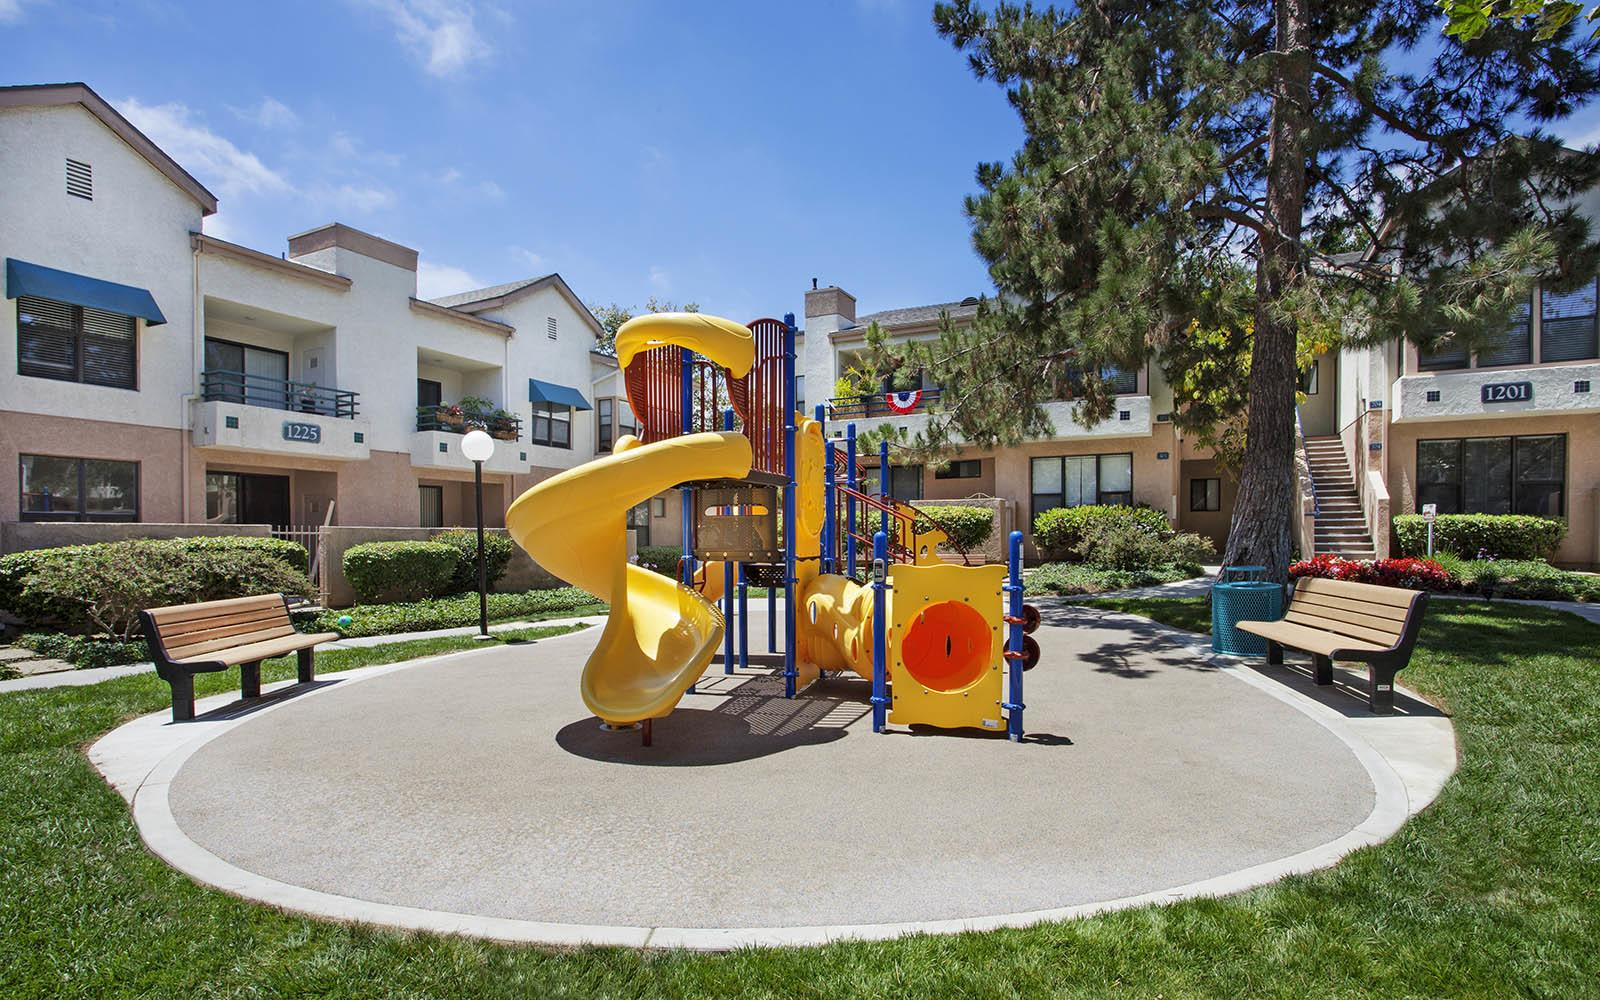 Children's Playground at Cypress Point Apartments in Ventura, CA